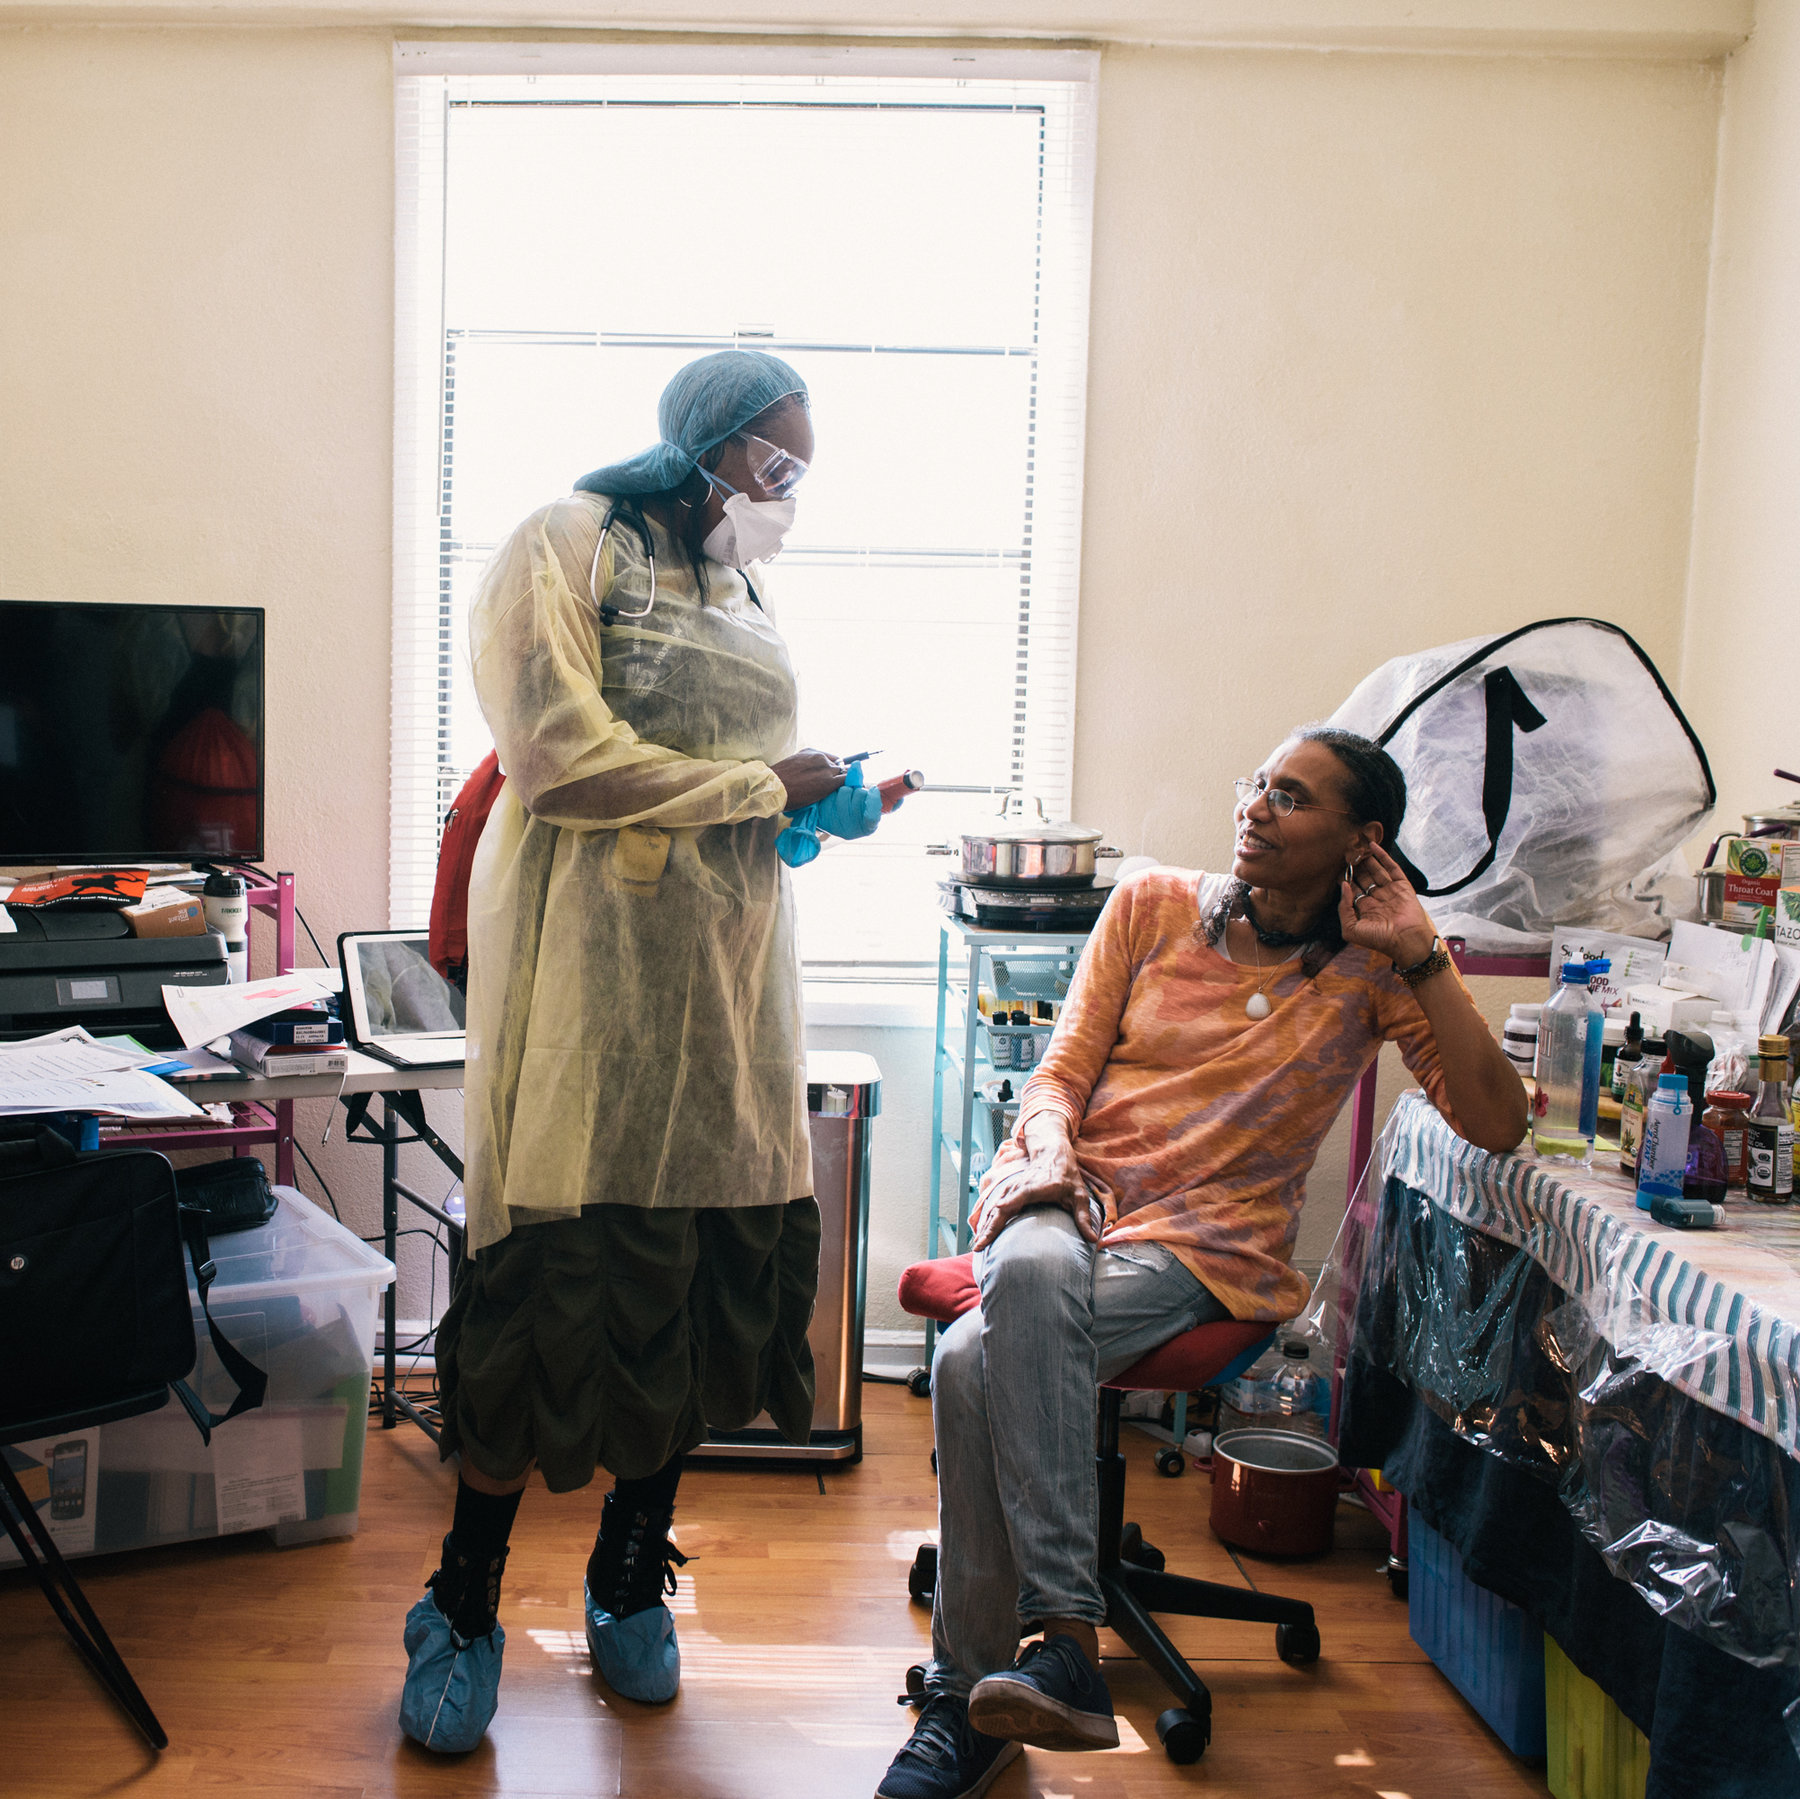 Rochelle Allen, a respiratory therapist, made a home visit to Lisa McClendon, who goes to the emergency room about once a month because of her asthma.Credit...Alexandra Hootnick for The New York Times